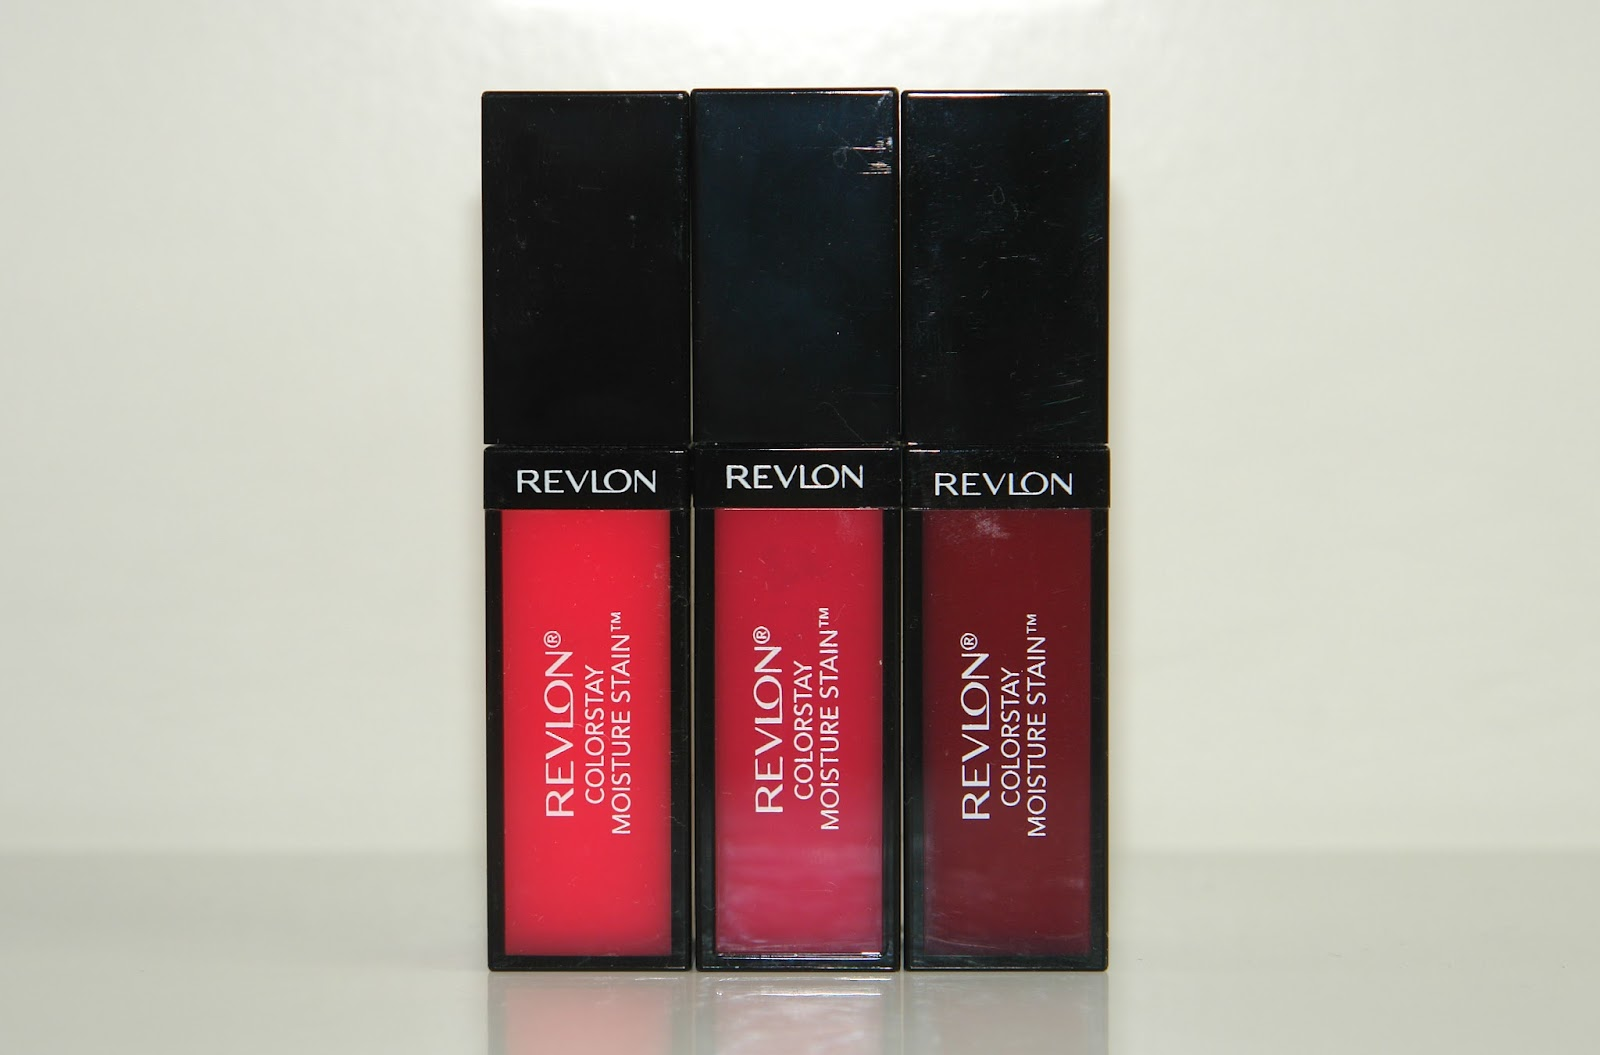 Revlon ColorStay Moisture Stains in Rio Rush, India Intrigue and Parisian Passion, beauty, lip gloss, lipstick, make up, review, Revlon, swatches, UK beauty blog, blogger